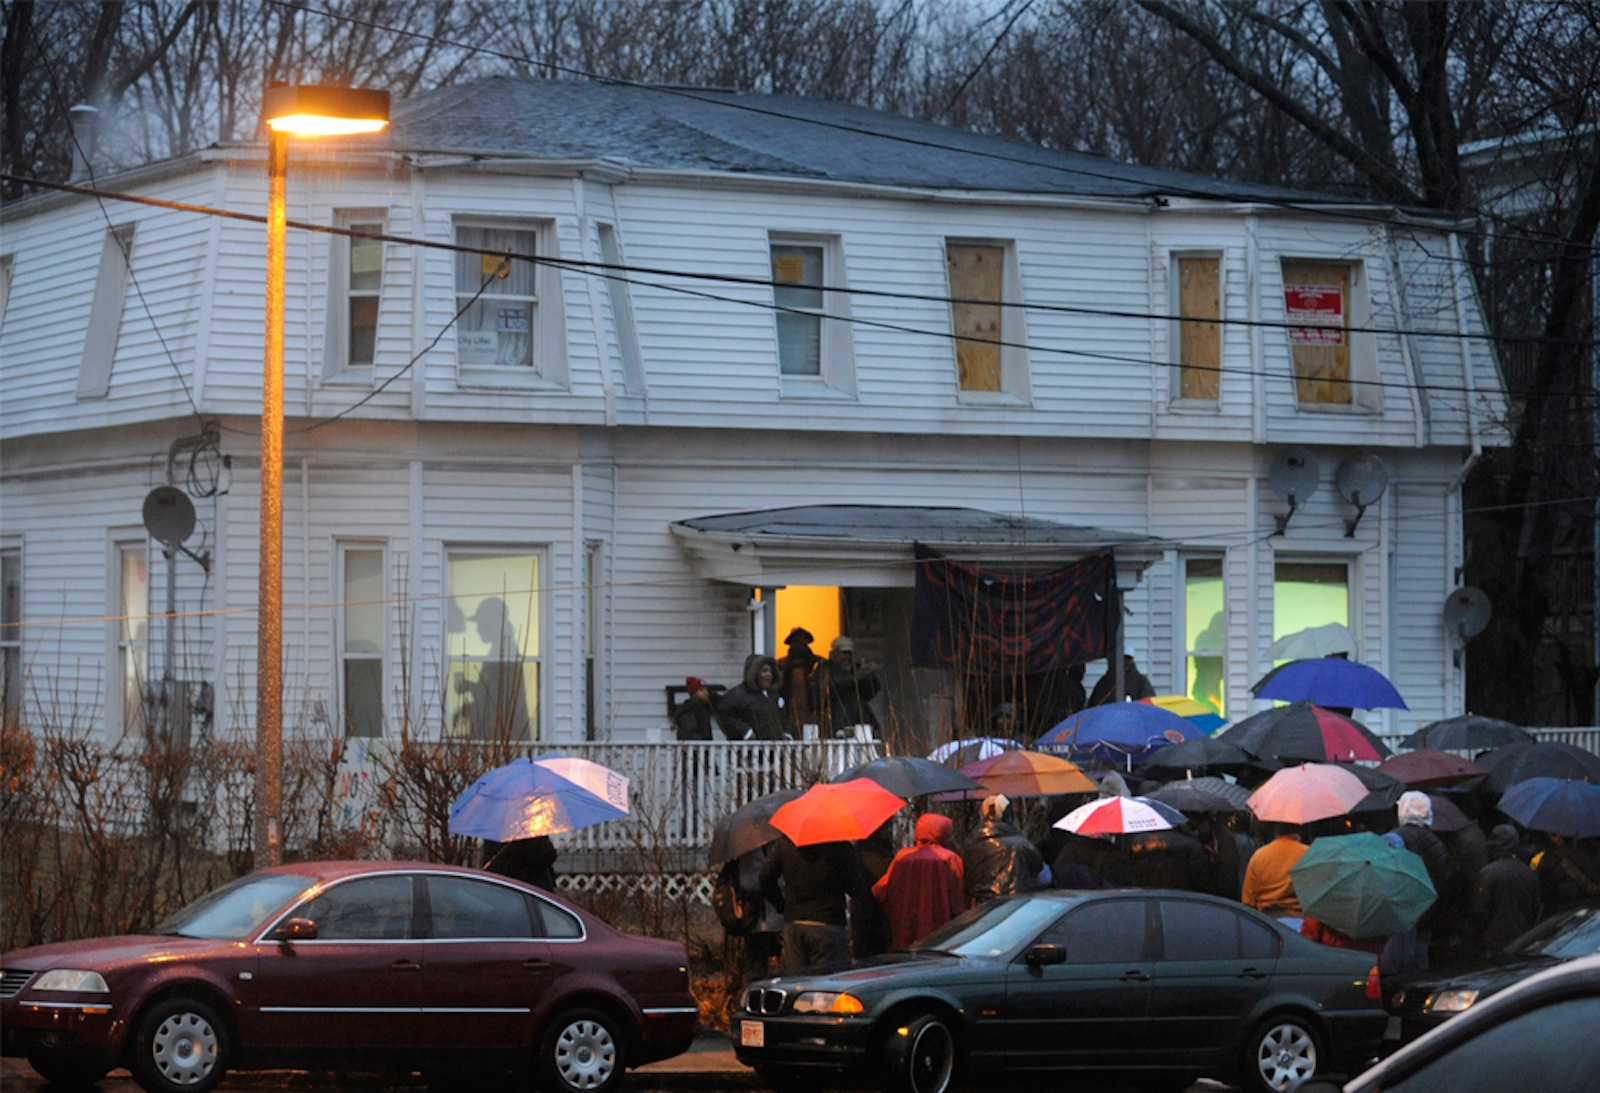 People stand outside of a home in the rain while a projection of people are shown inside. This was part of an art installation in Boston.